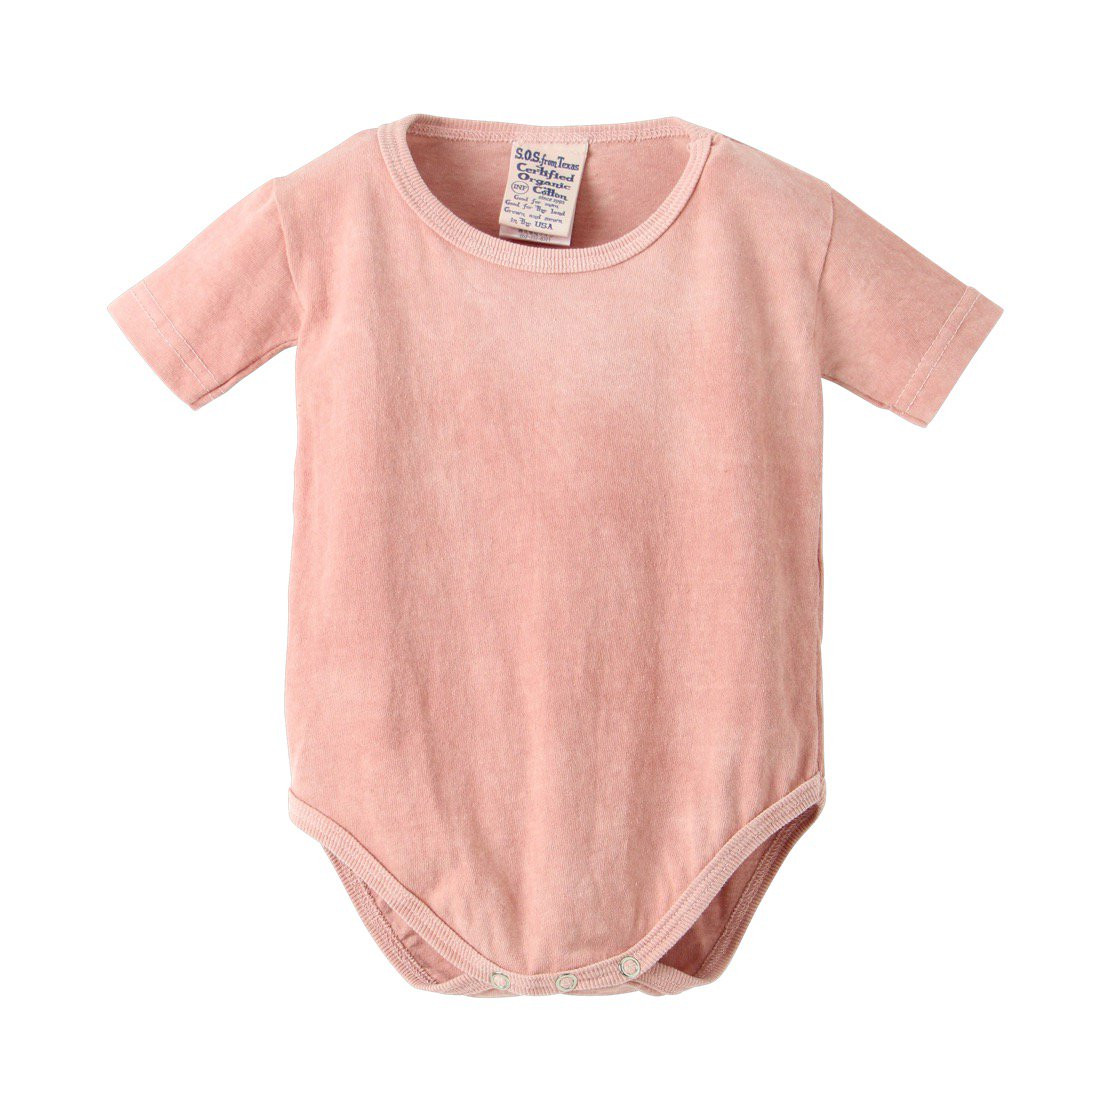 Bengala Dyed Baby ROMPER